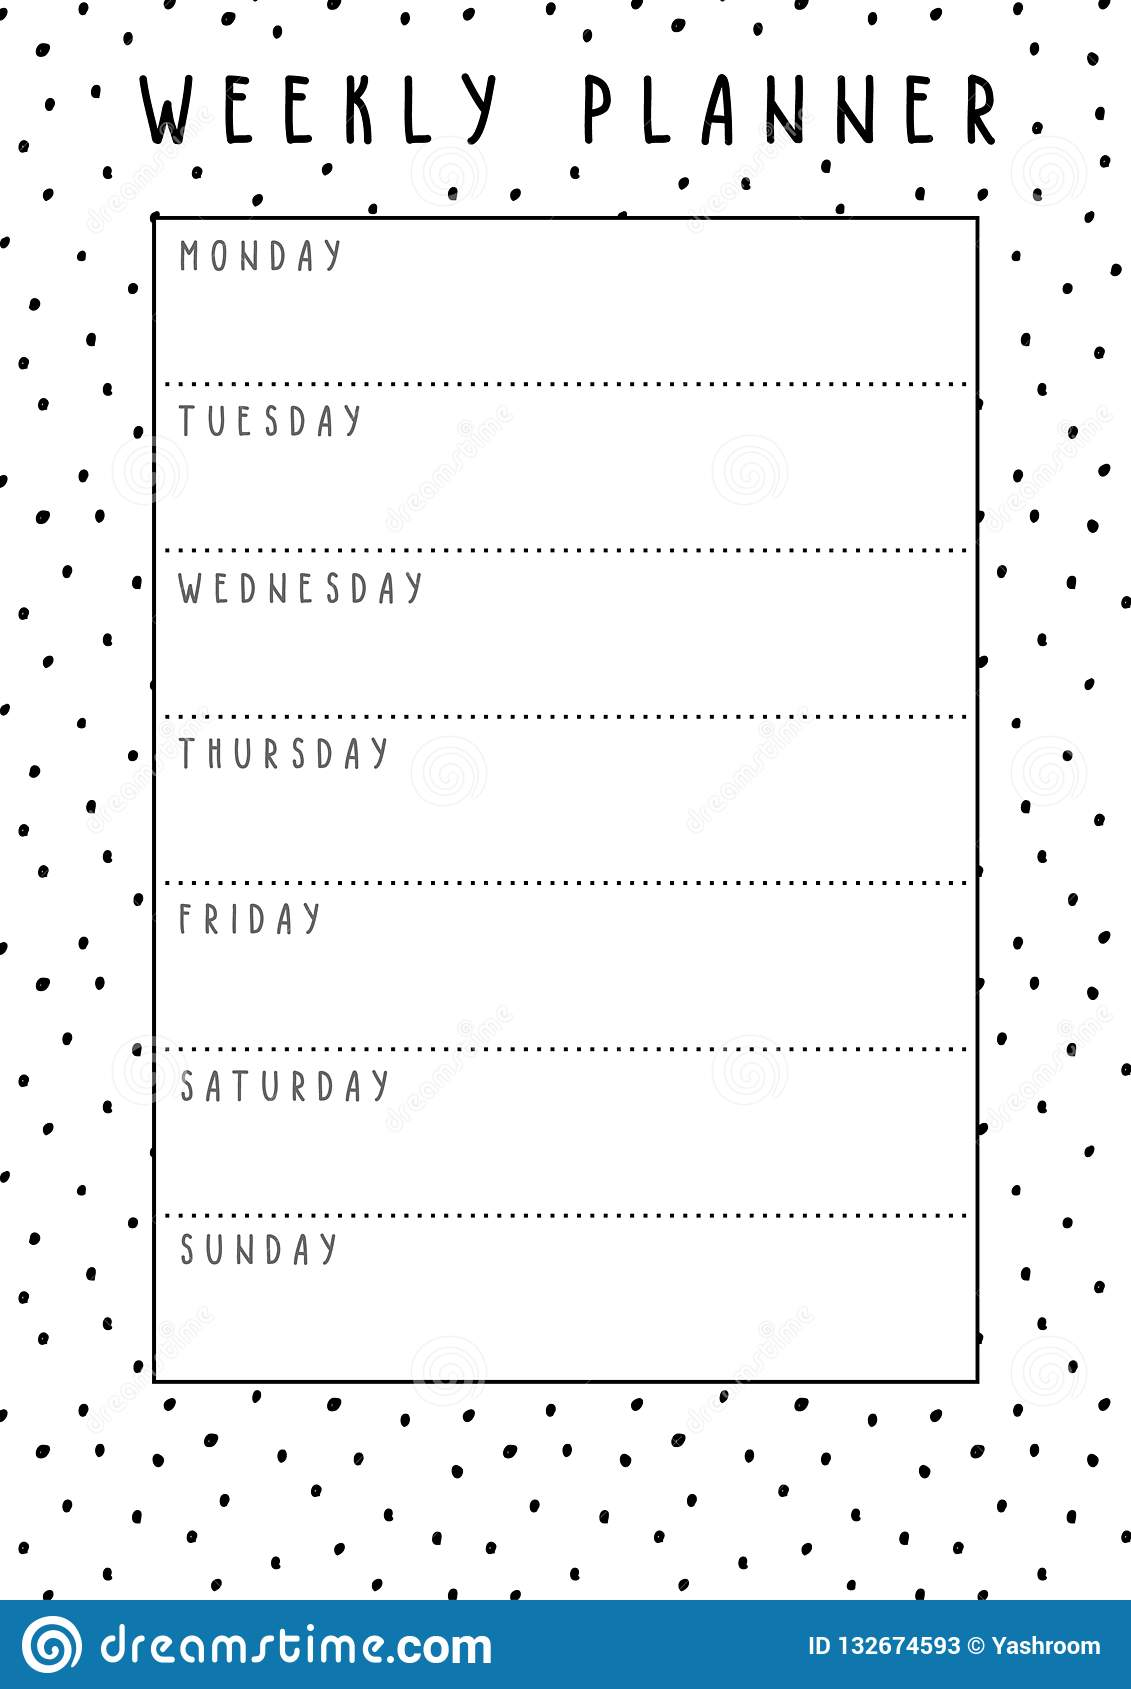 graphic regarding Cute Weekly Planner Printable titled Vector Weekly Planner Inside of Lovable Layout With Polka Dot Practice